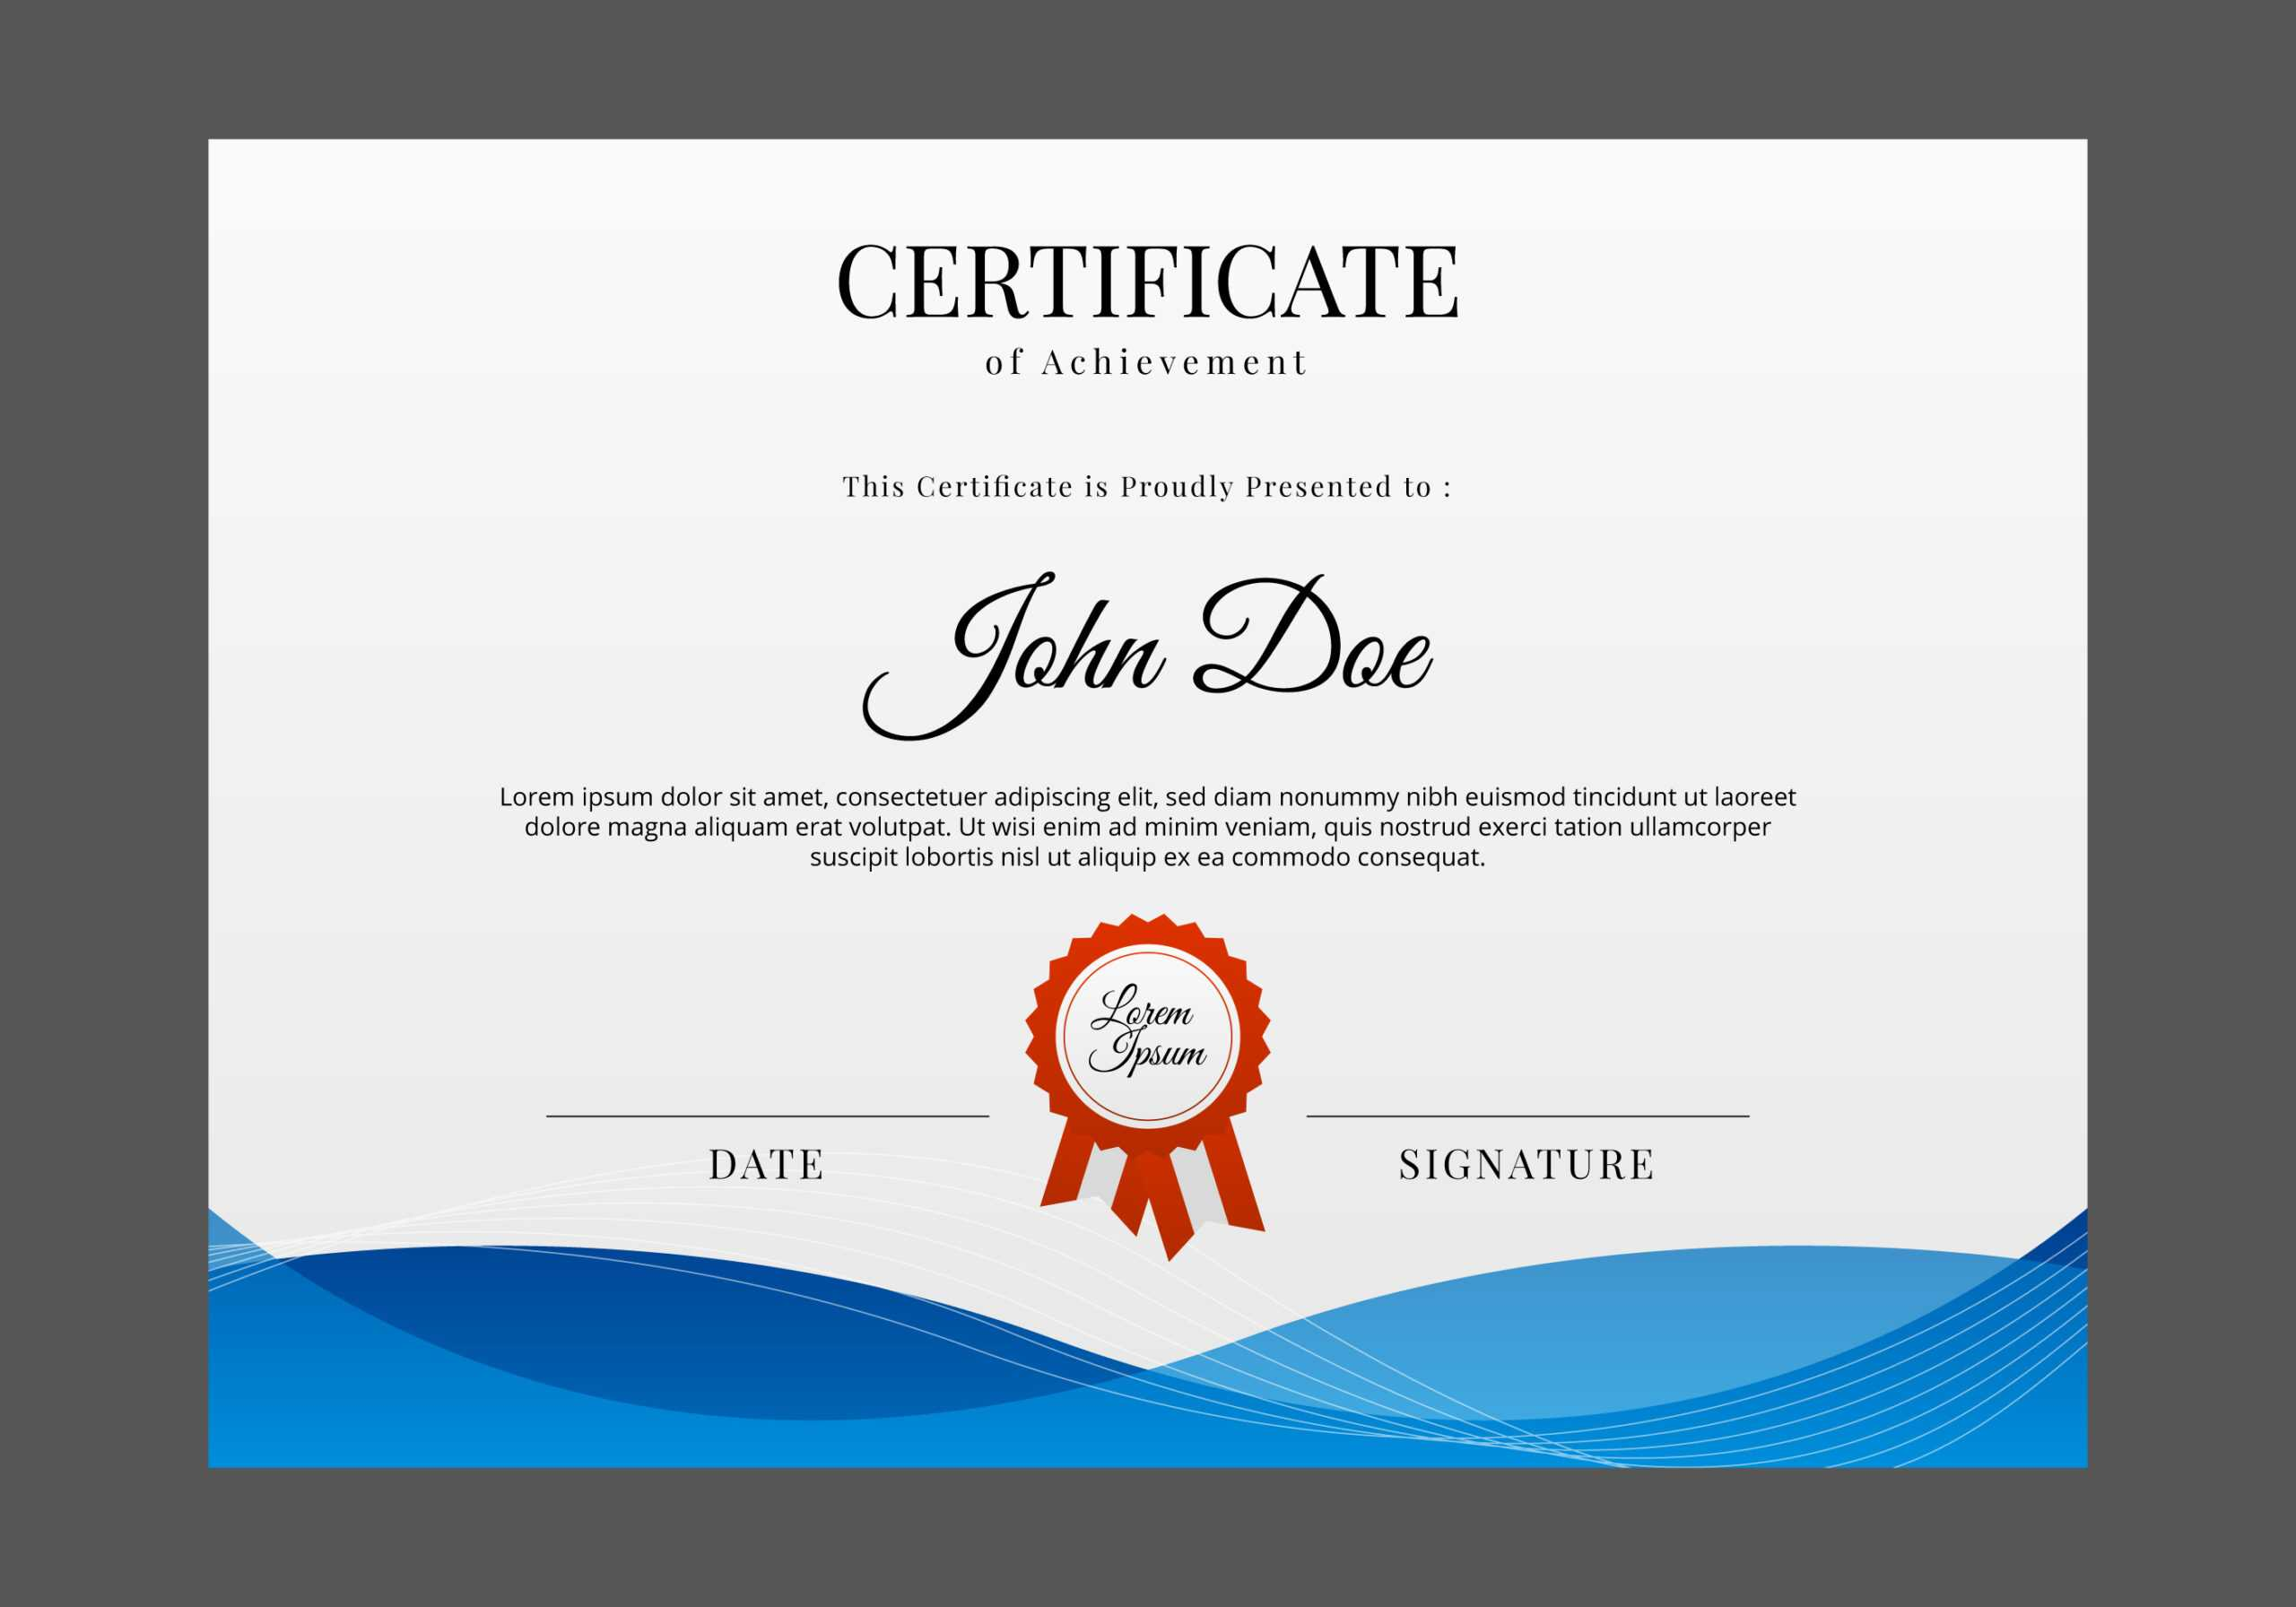 Certificate Templates, Free Certificate Designs Intended For Beautiful Certificate Templates